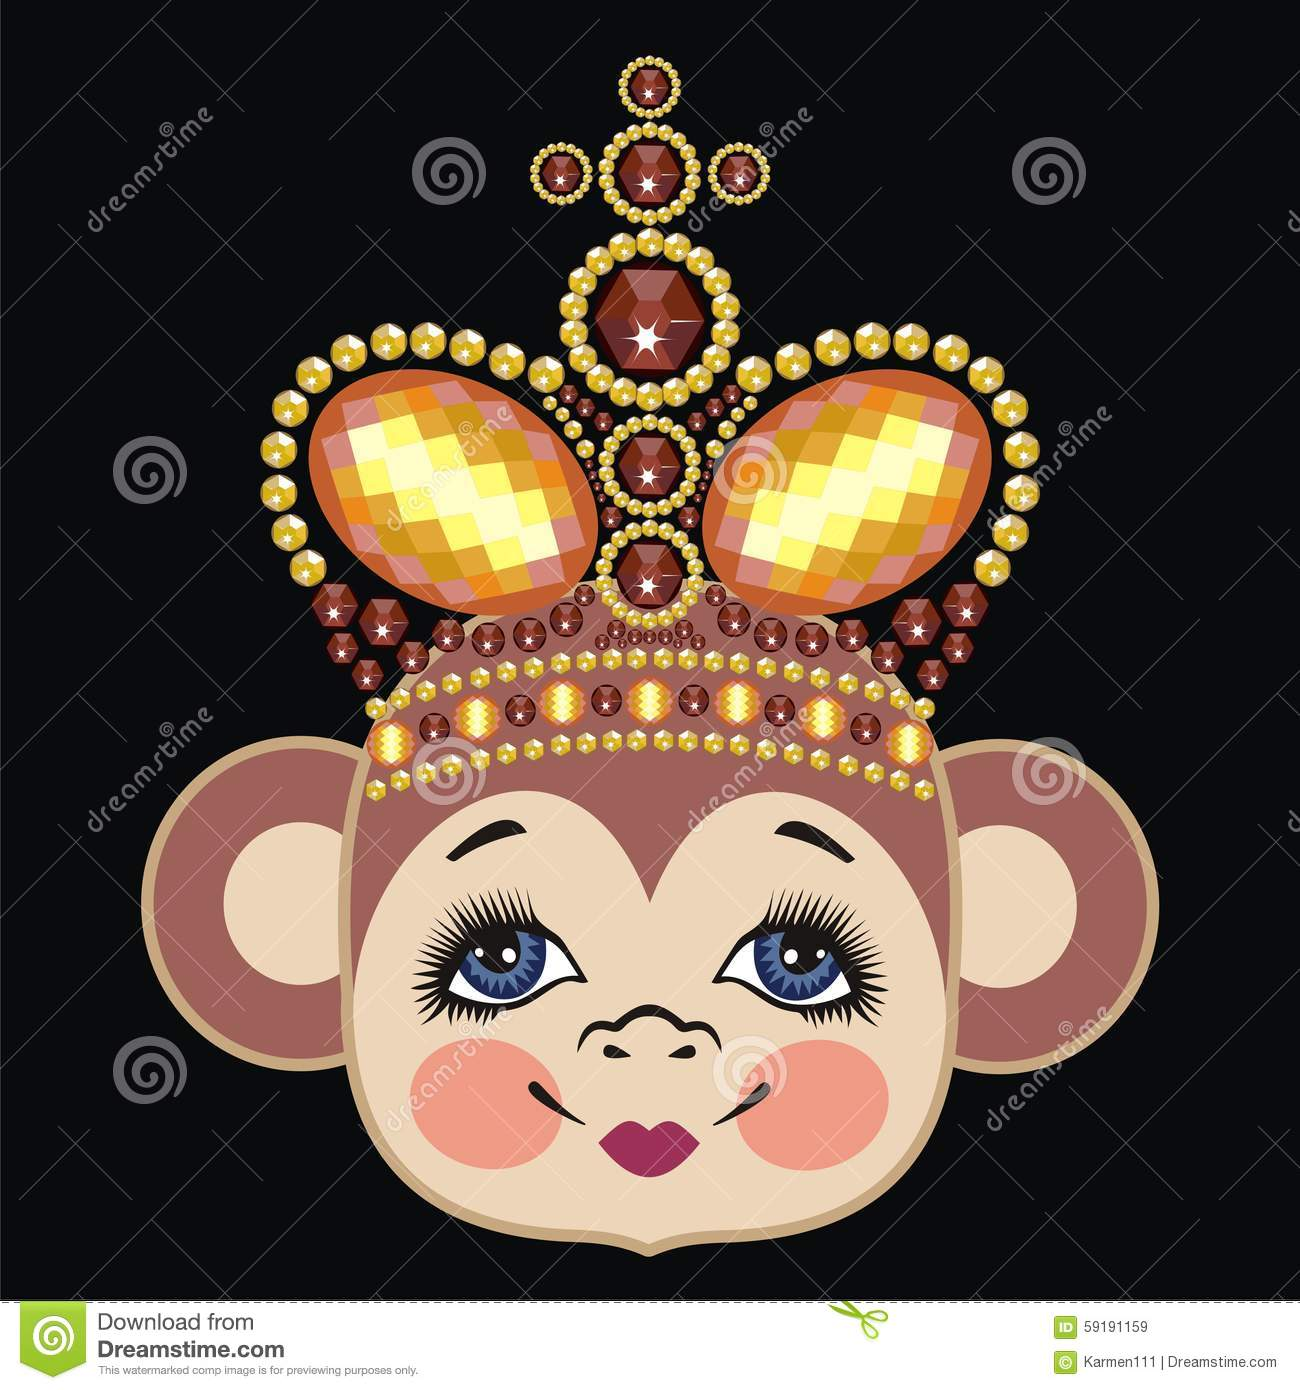 Monkey In The Crown Queen Pattern Head Chinese Zodiac 2016